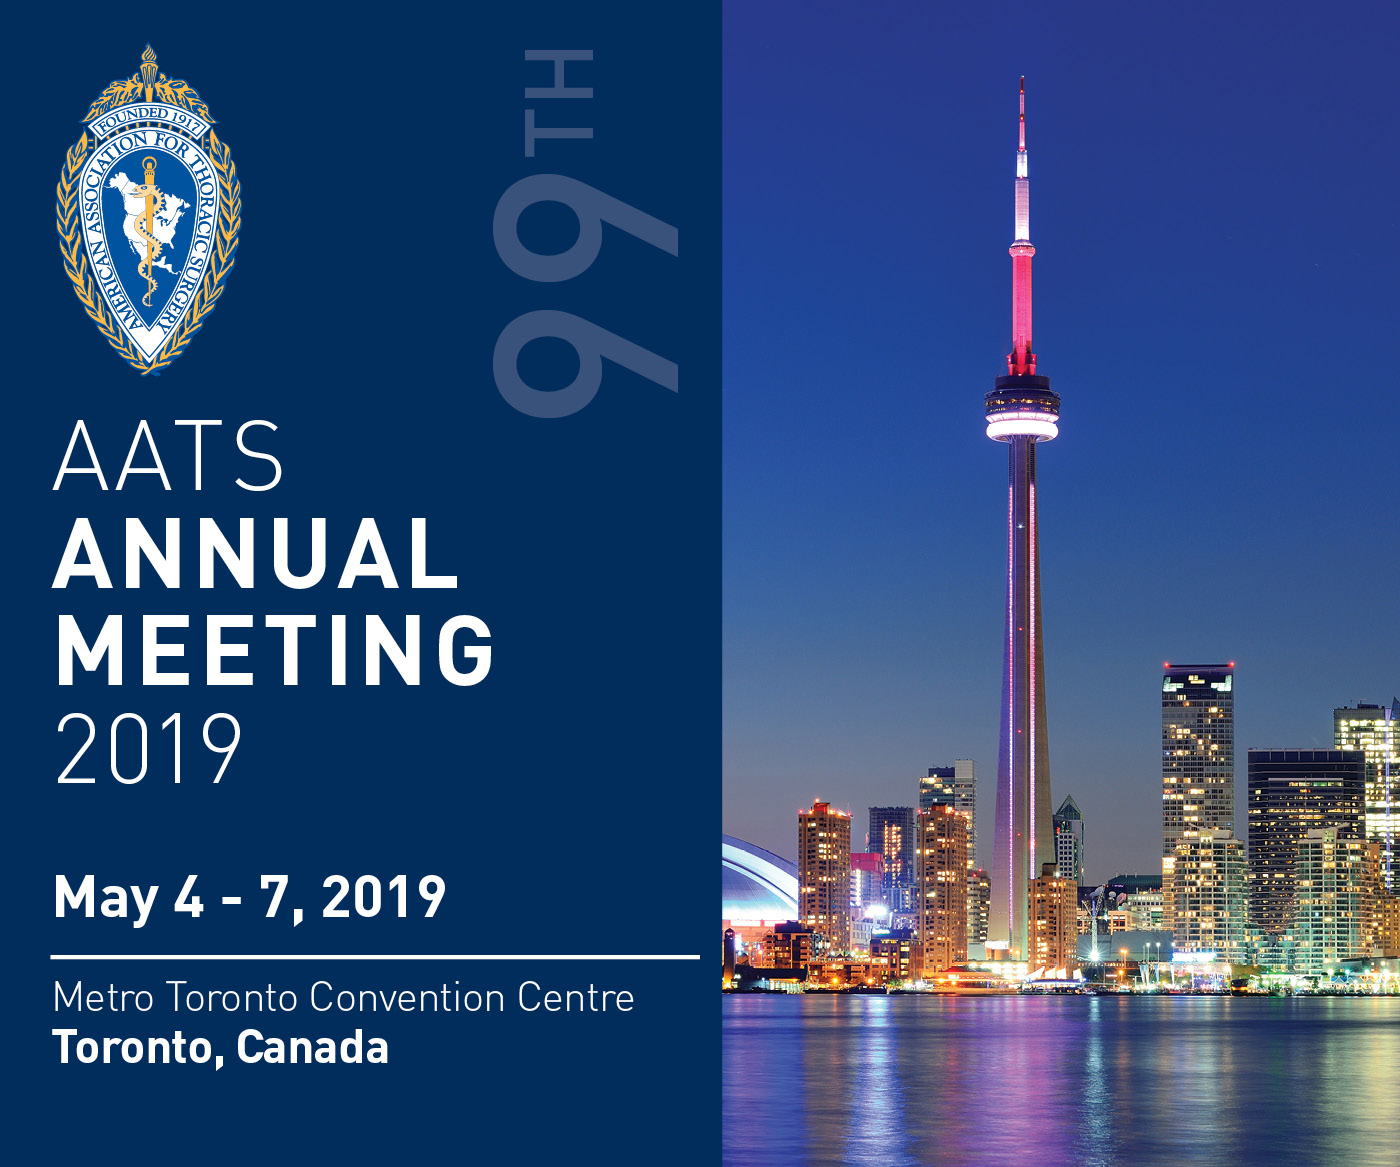 AATS 99th Annual Meeting